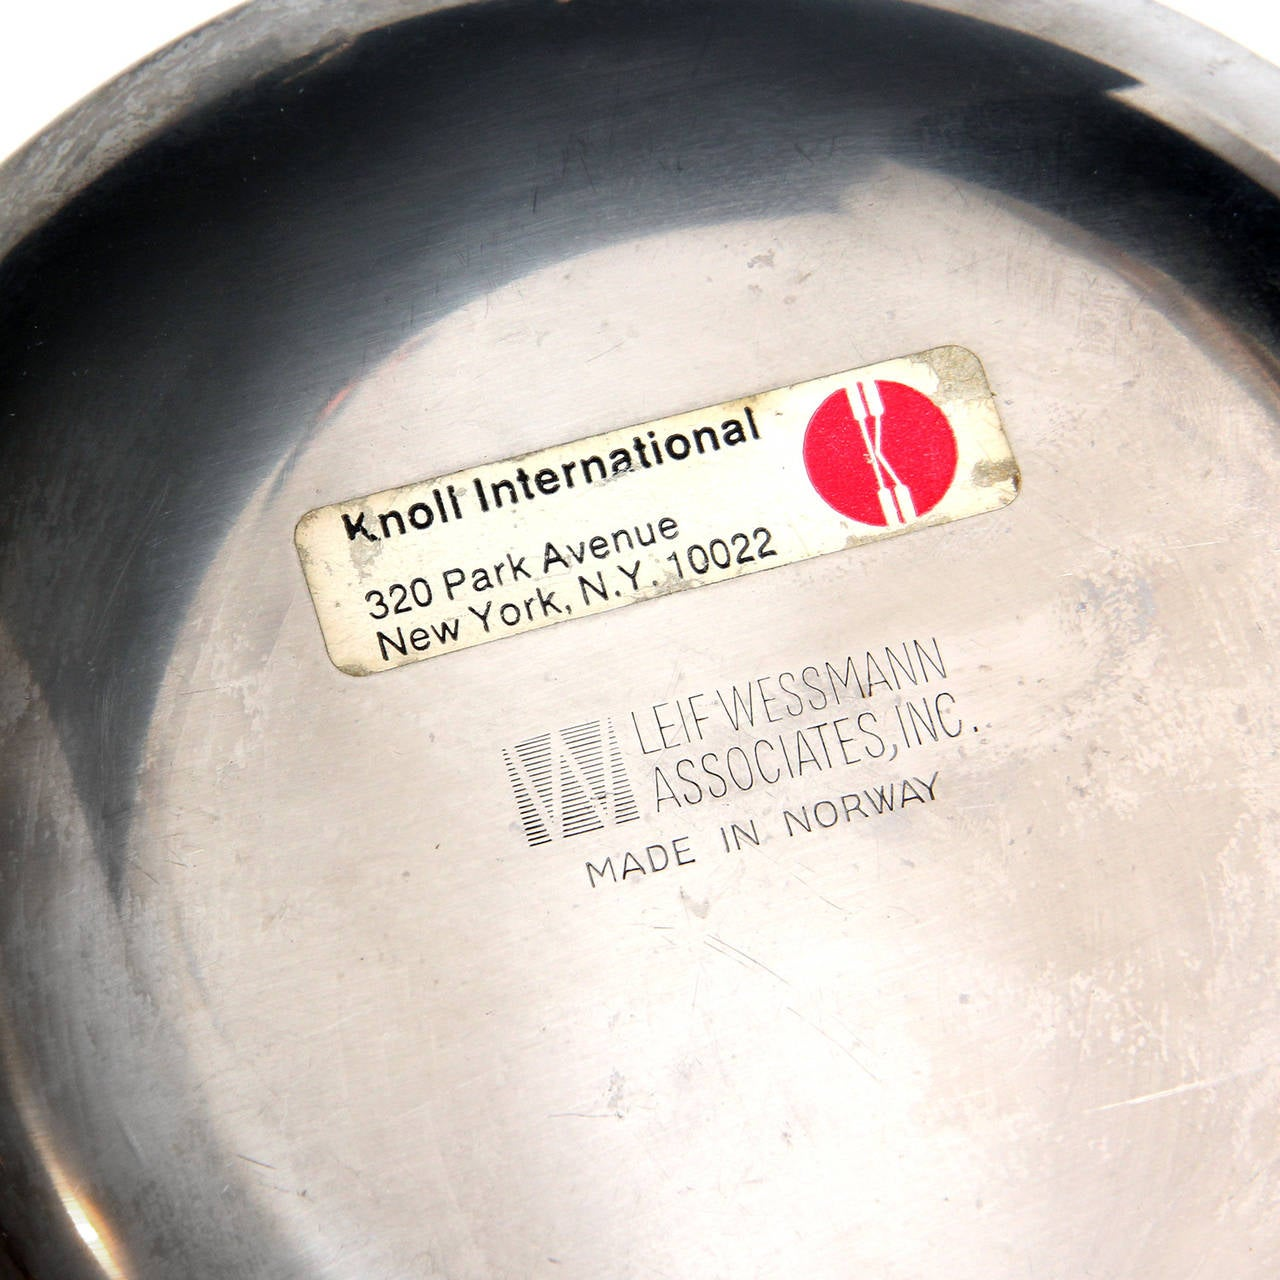 Norwegian Enameled Steel Bowl In Good Condition For Sale In New York, NY